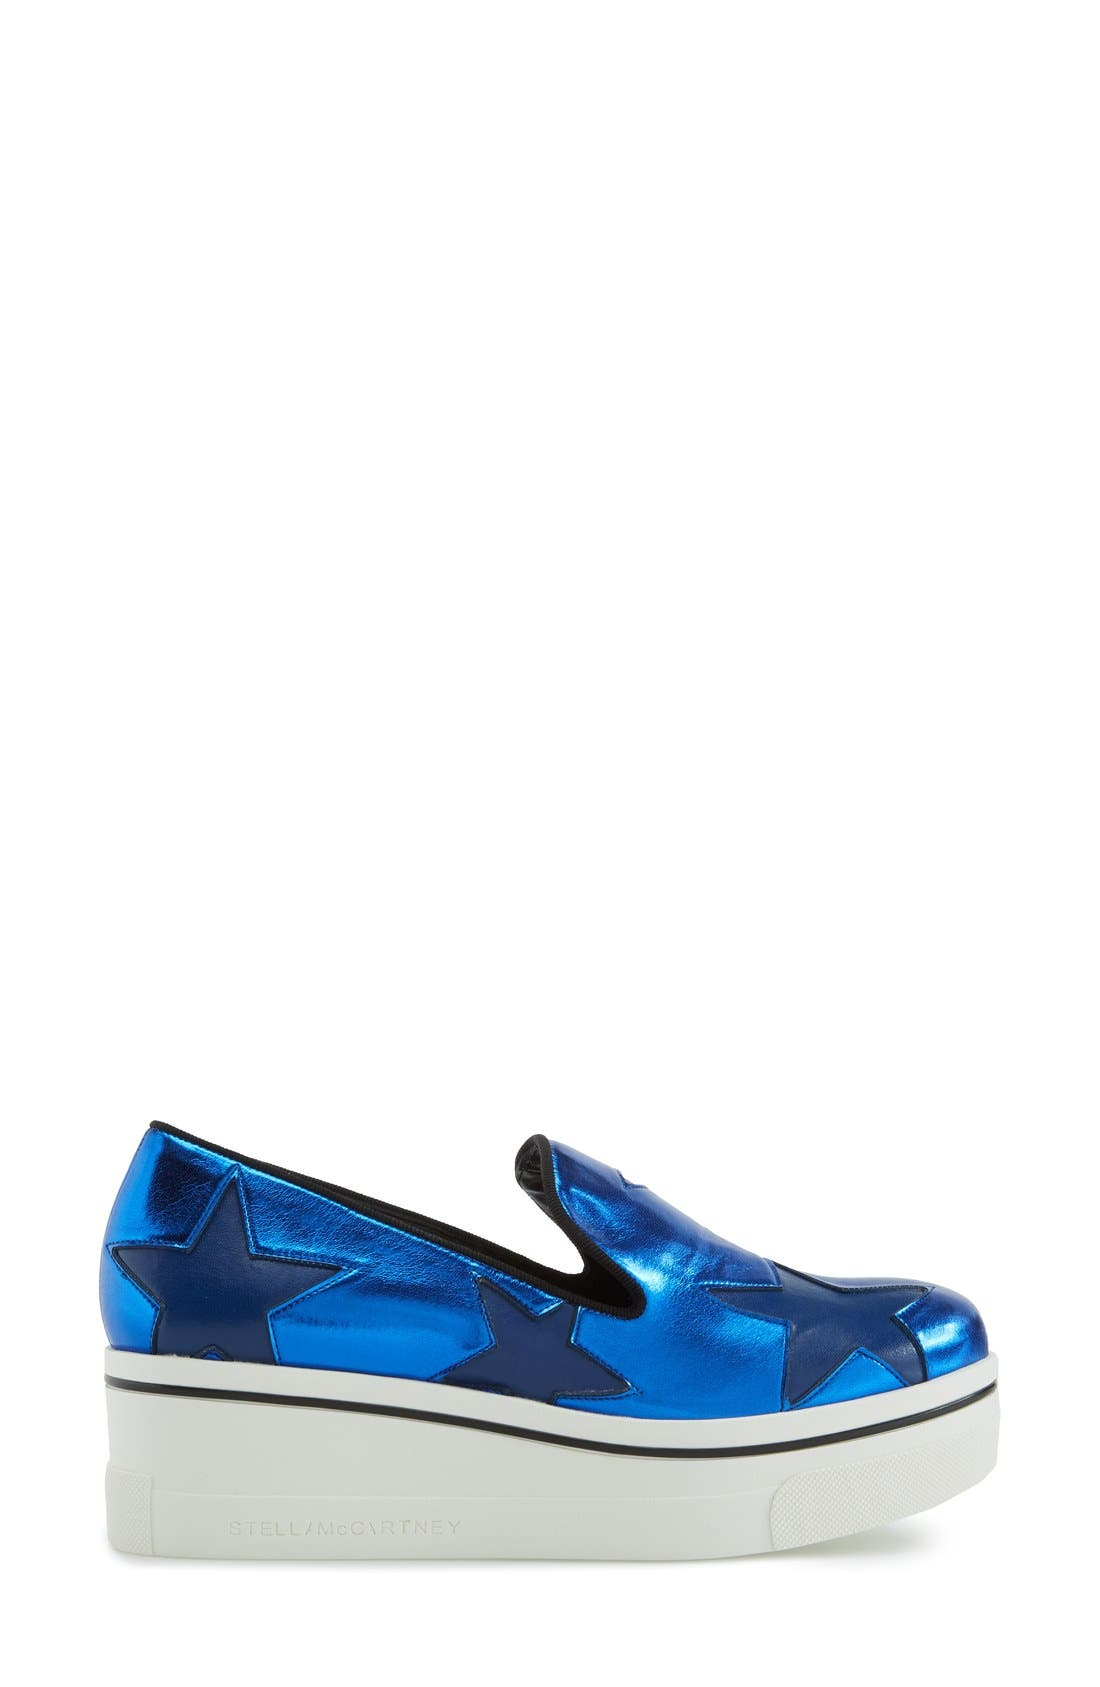 Alternate Image 4  - Stella McCartney 'Star' Platform Loafer (Women)